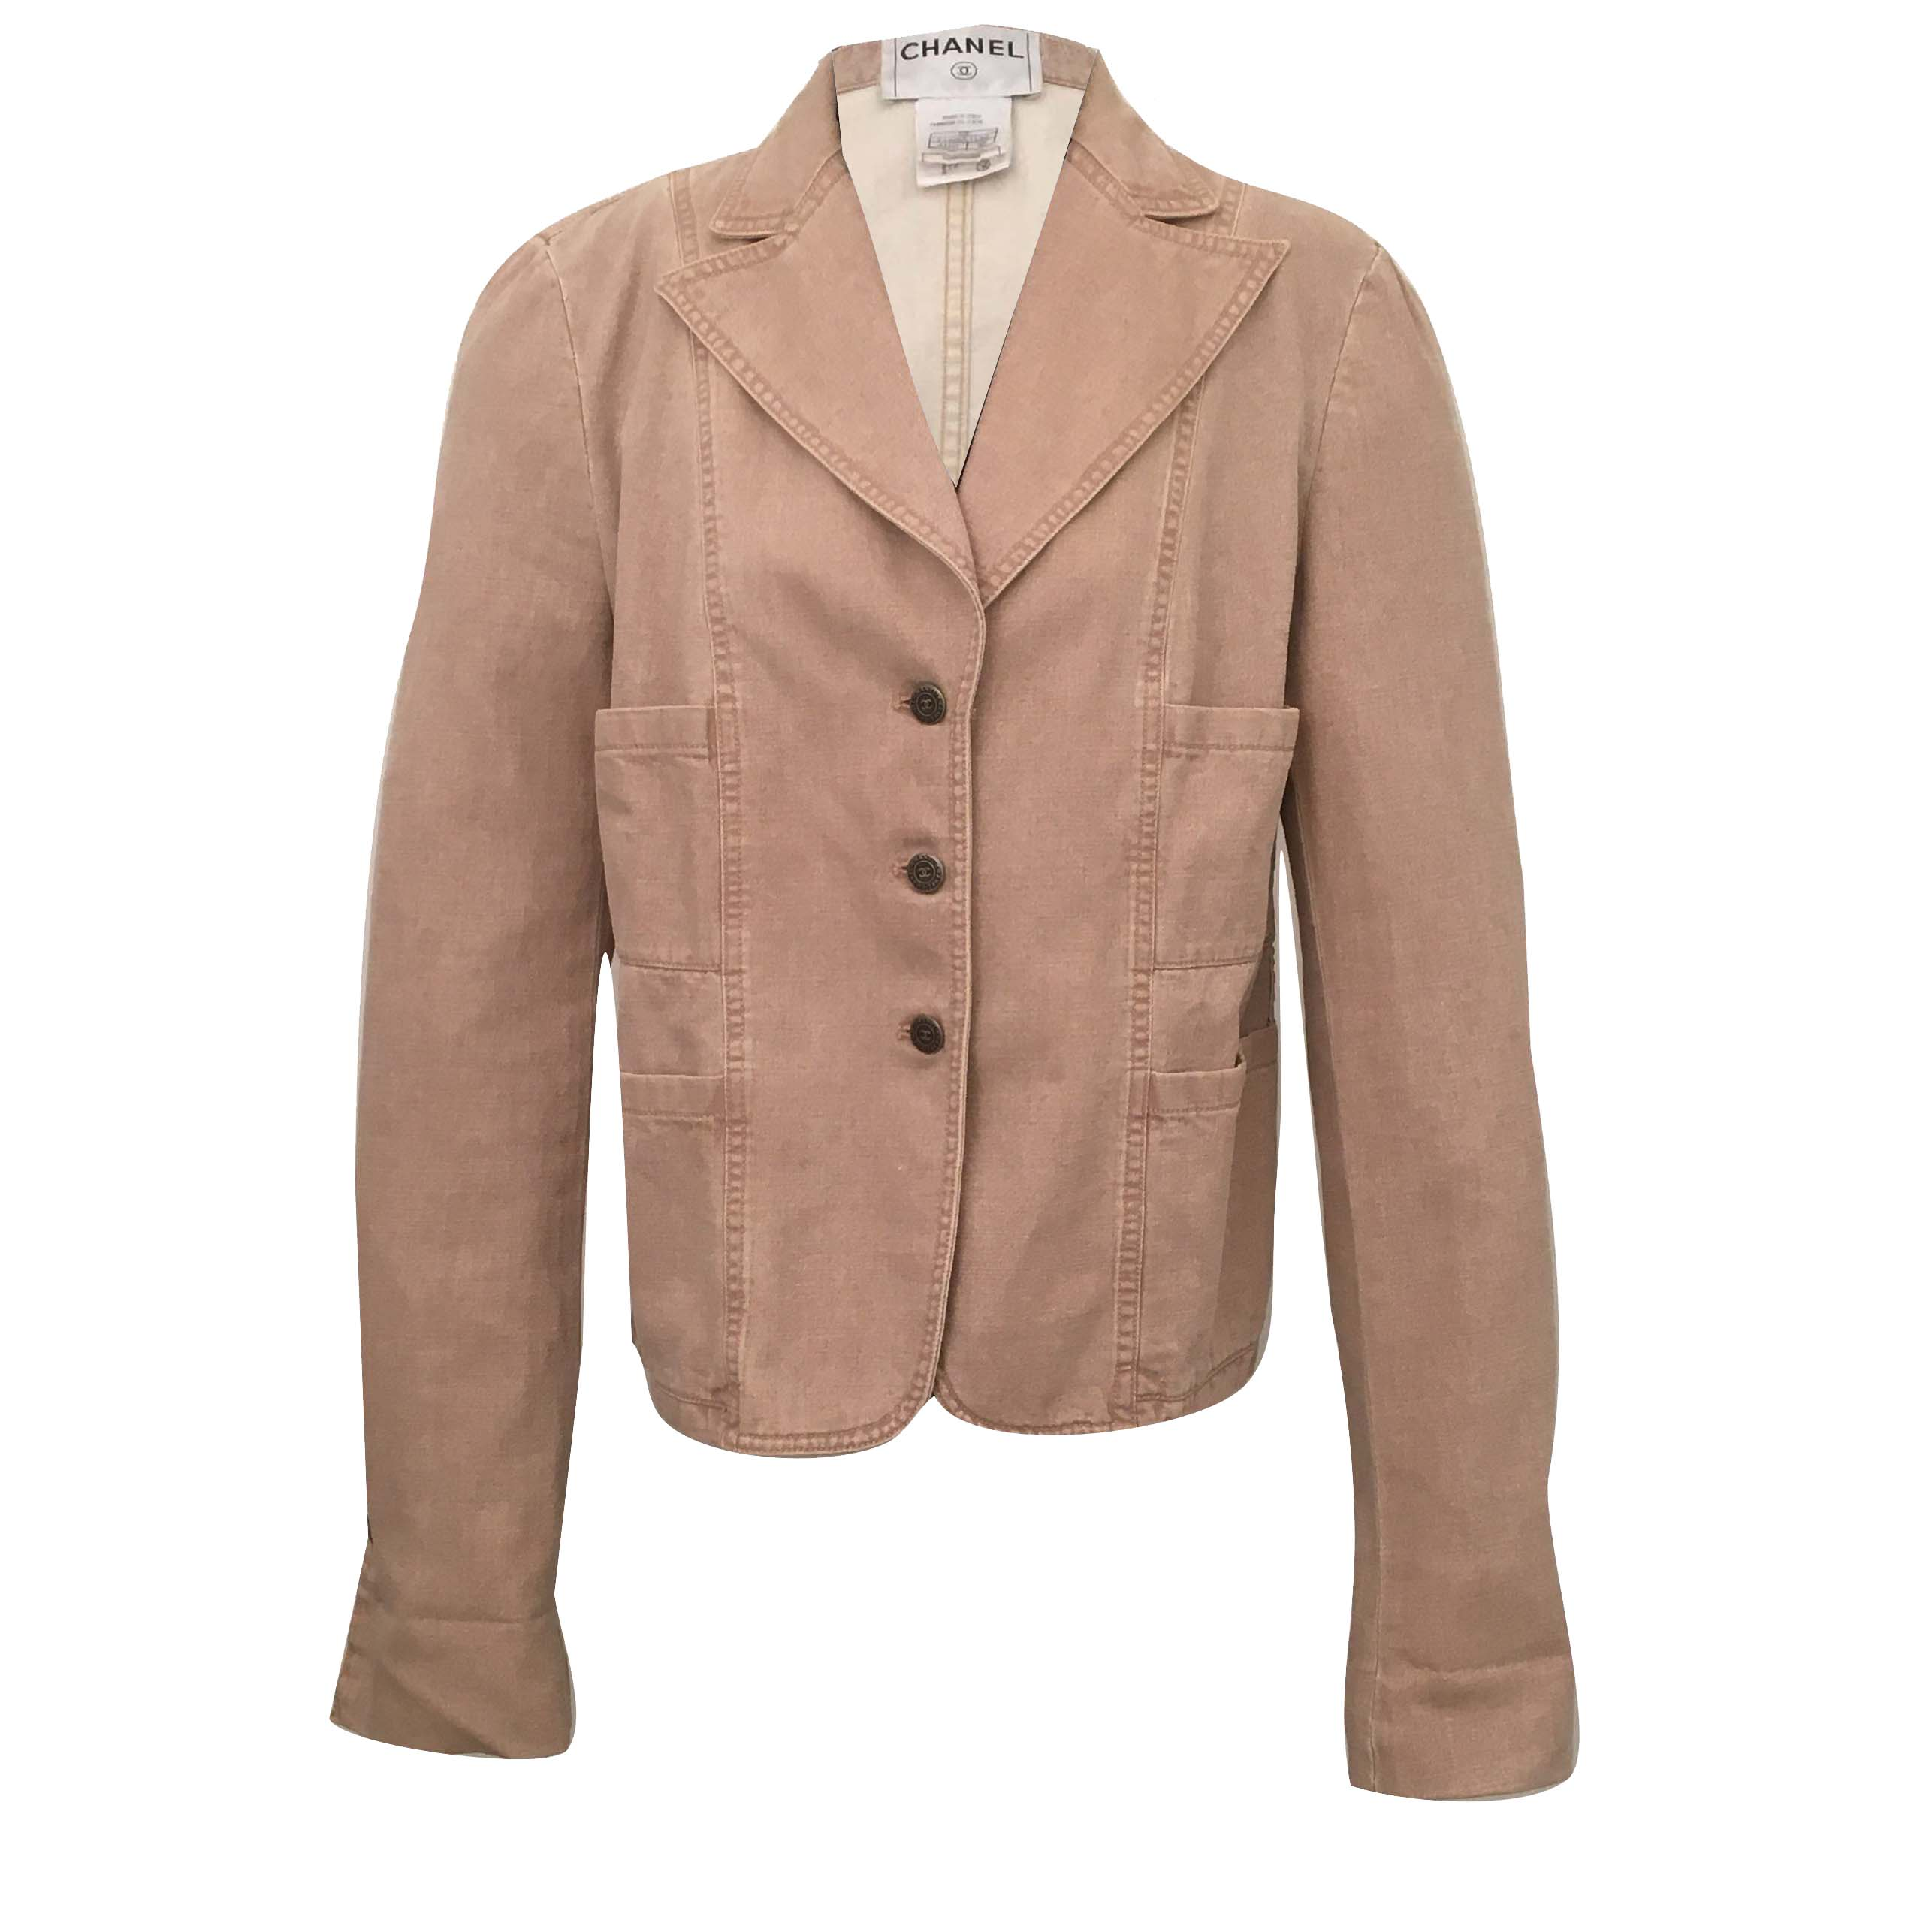 Chanel Beige Cotton Jacket